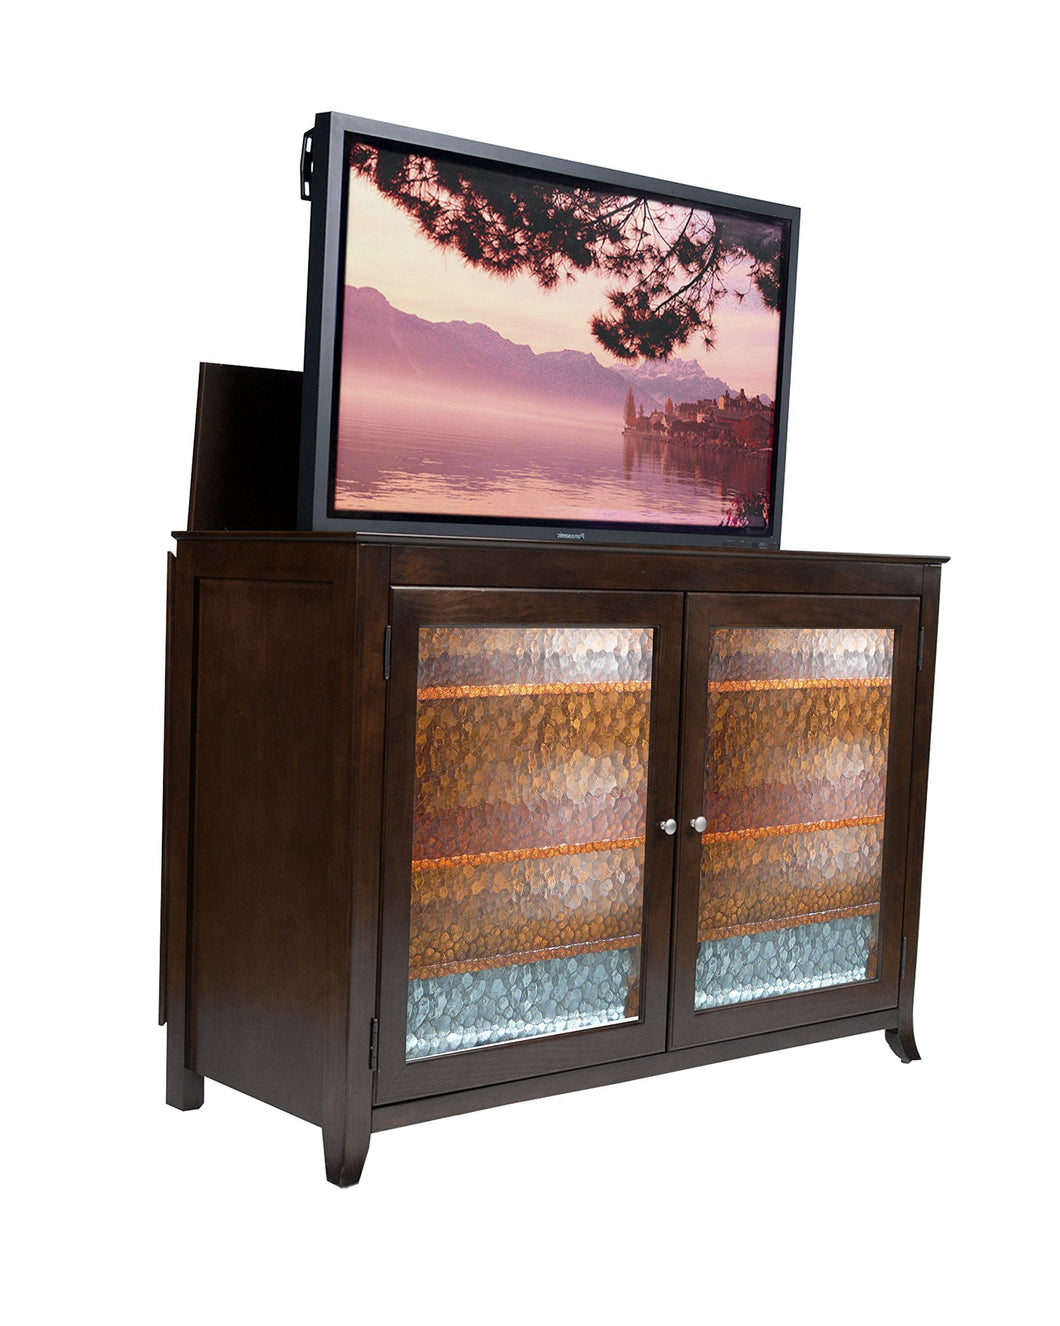 New touchstone 70065 carmel tv lift cabinet espresso up to 60 inch tvs diagonal 55 in wide contemporary style motorized tv cabinet pop up tv cabinet with memory feature ir rf 12v trigger